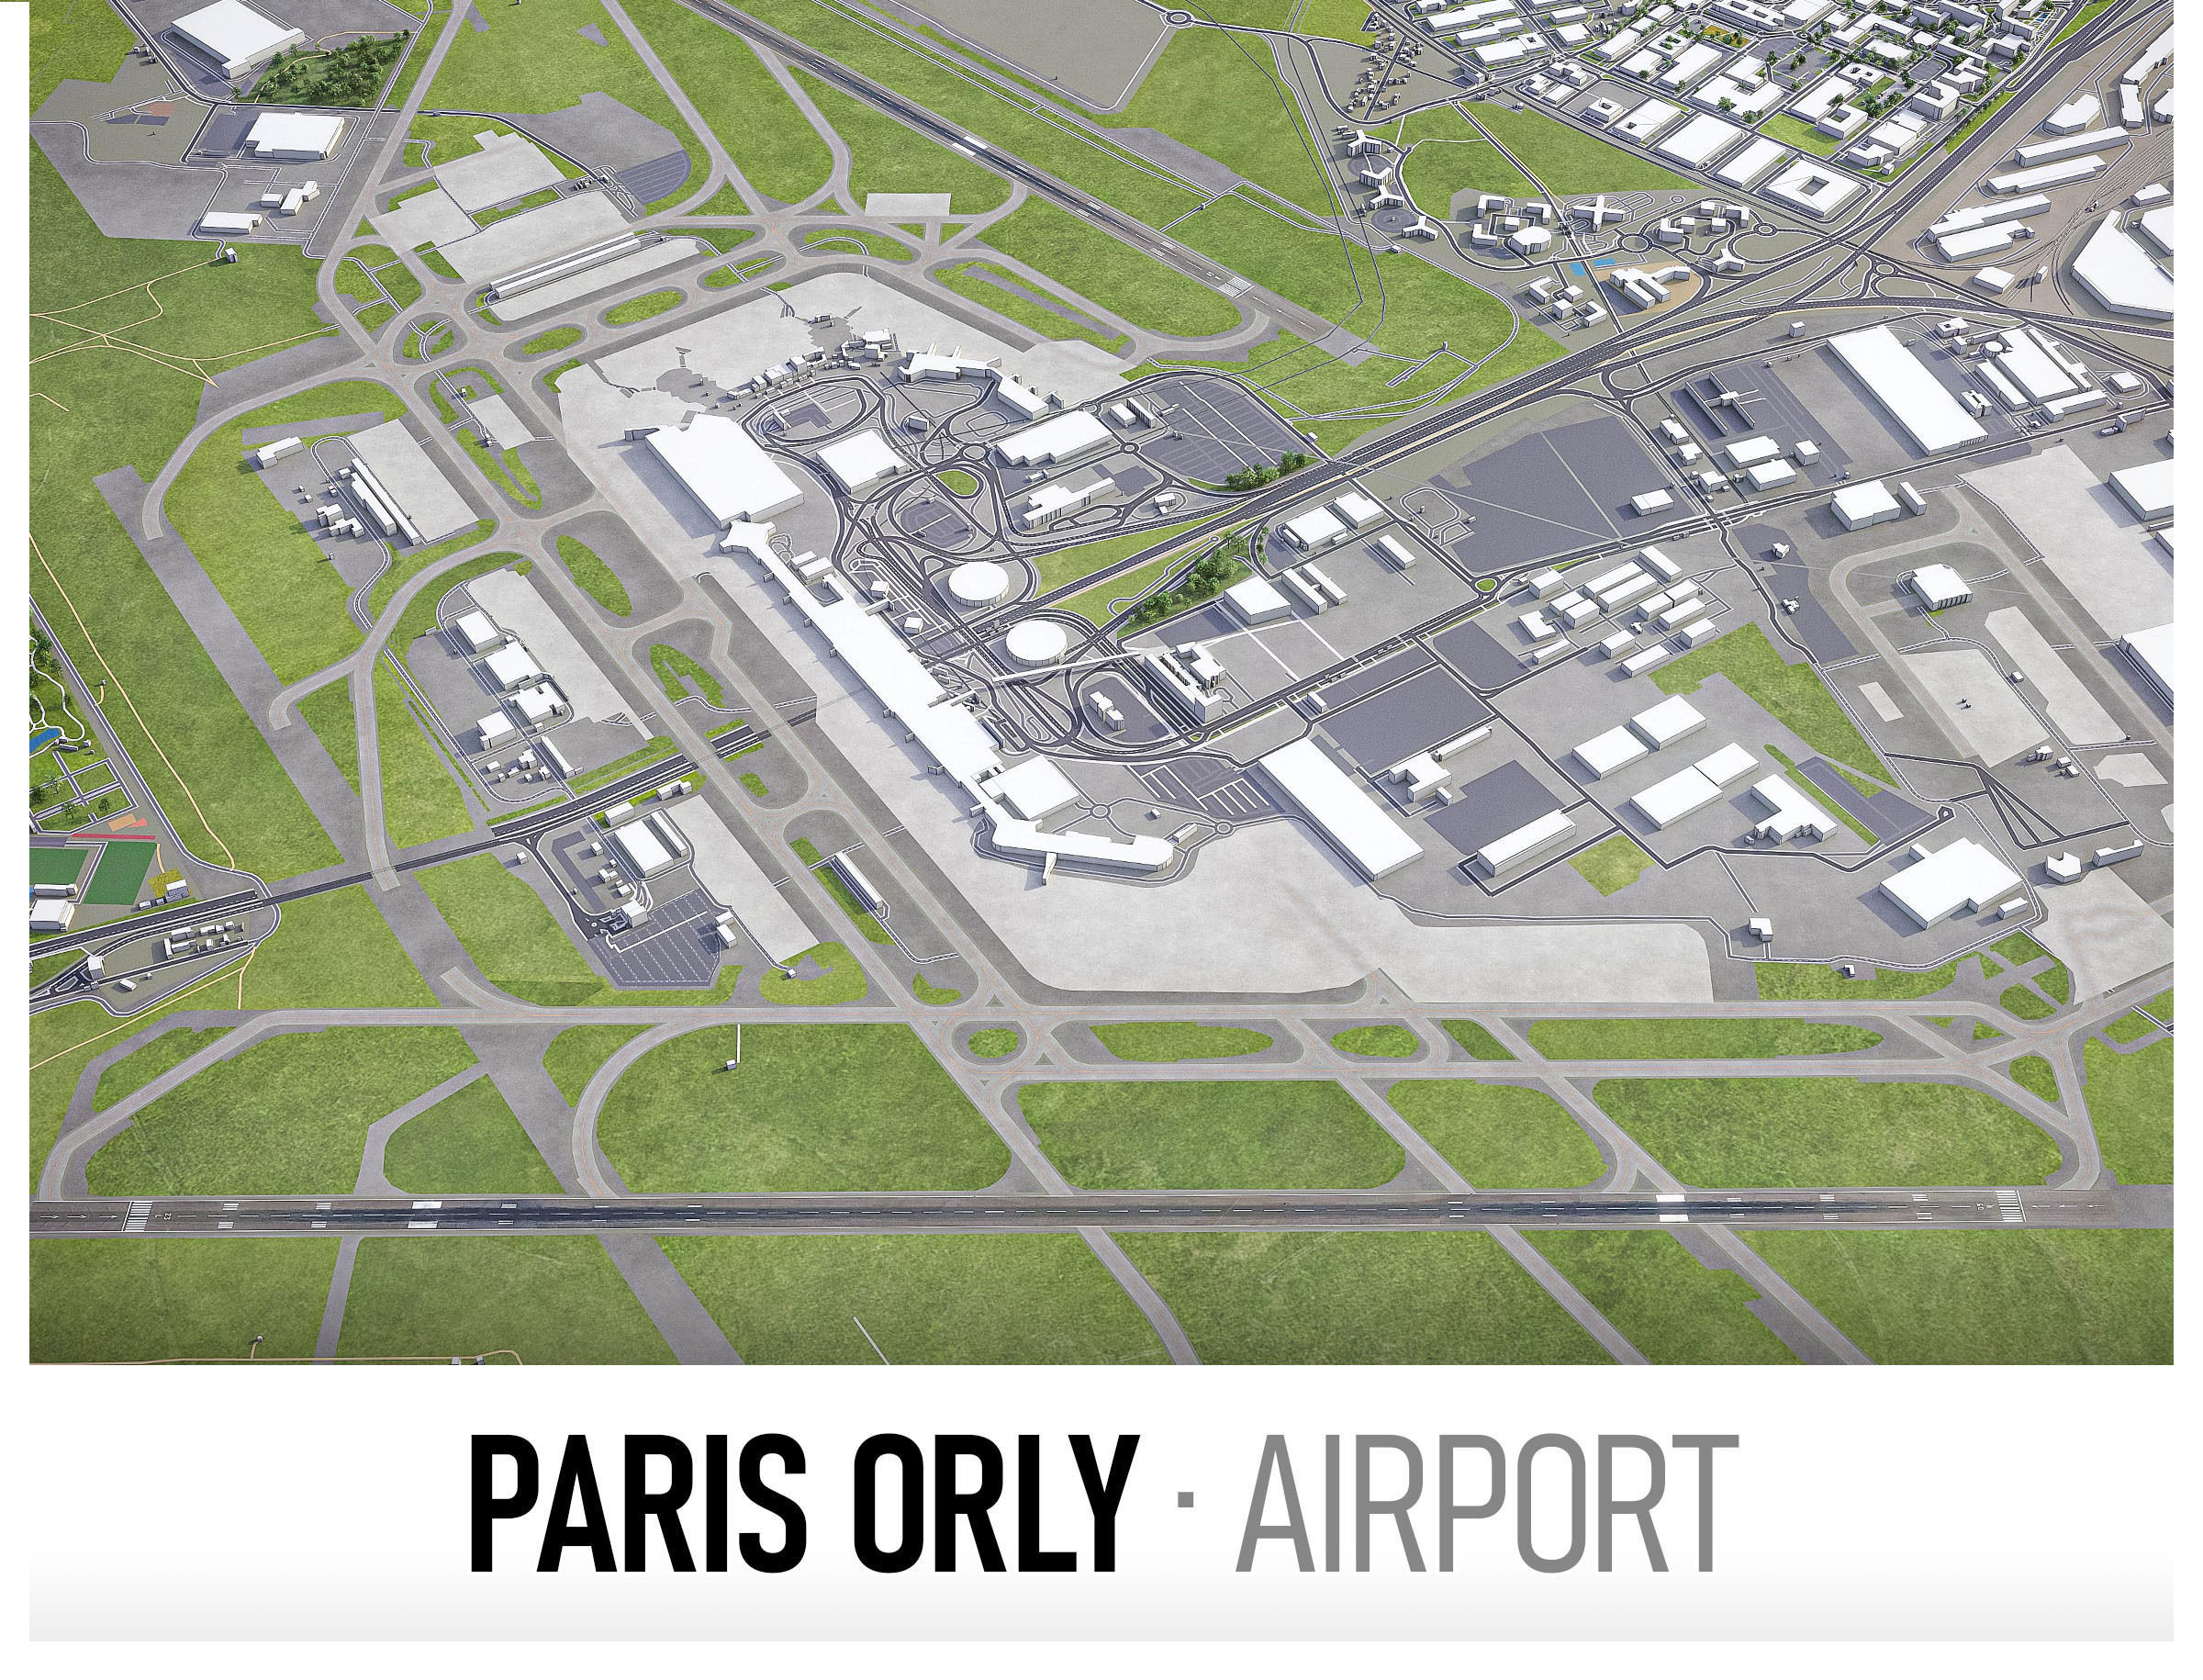 Paris Orly Airport - ORY